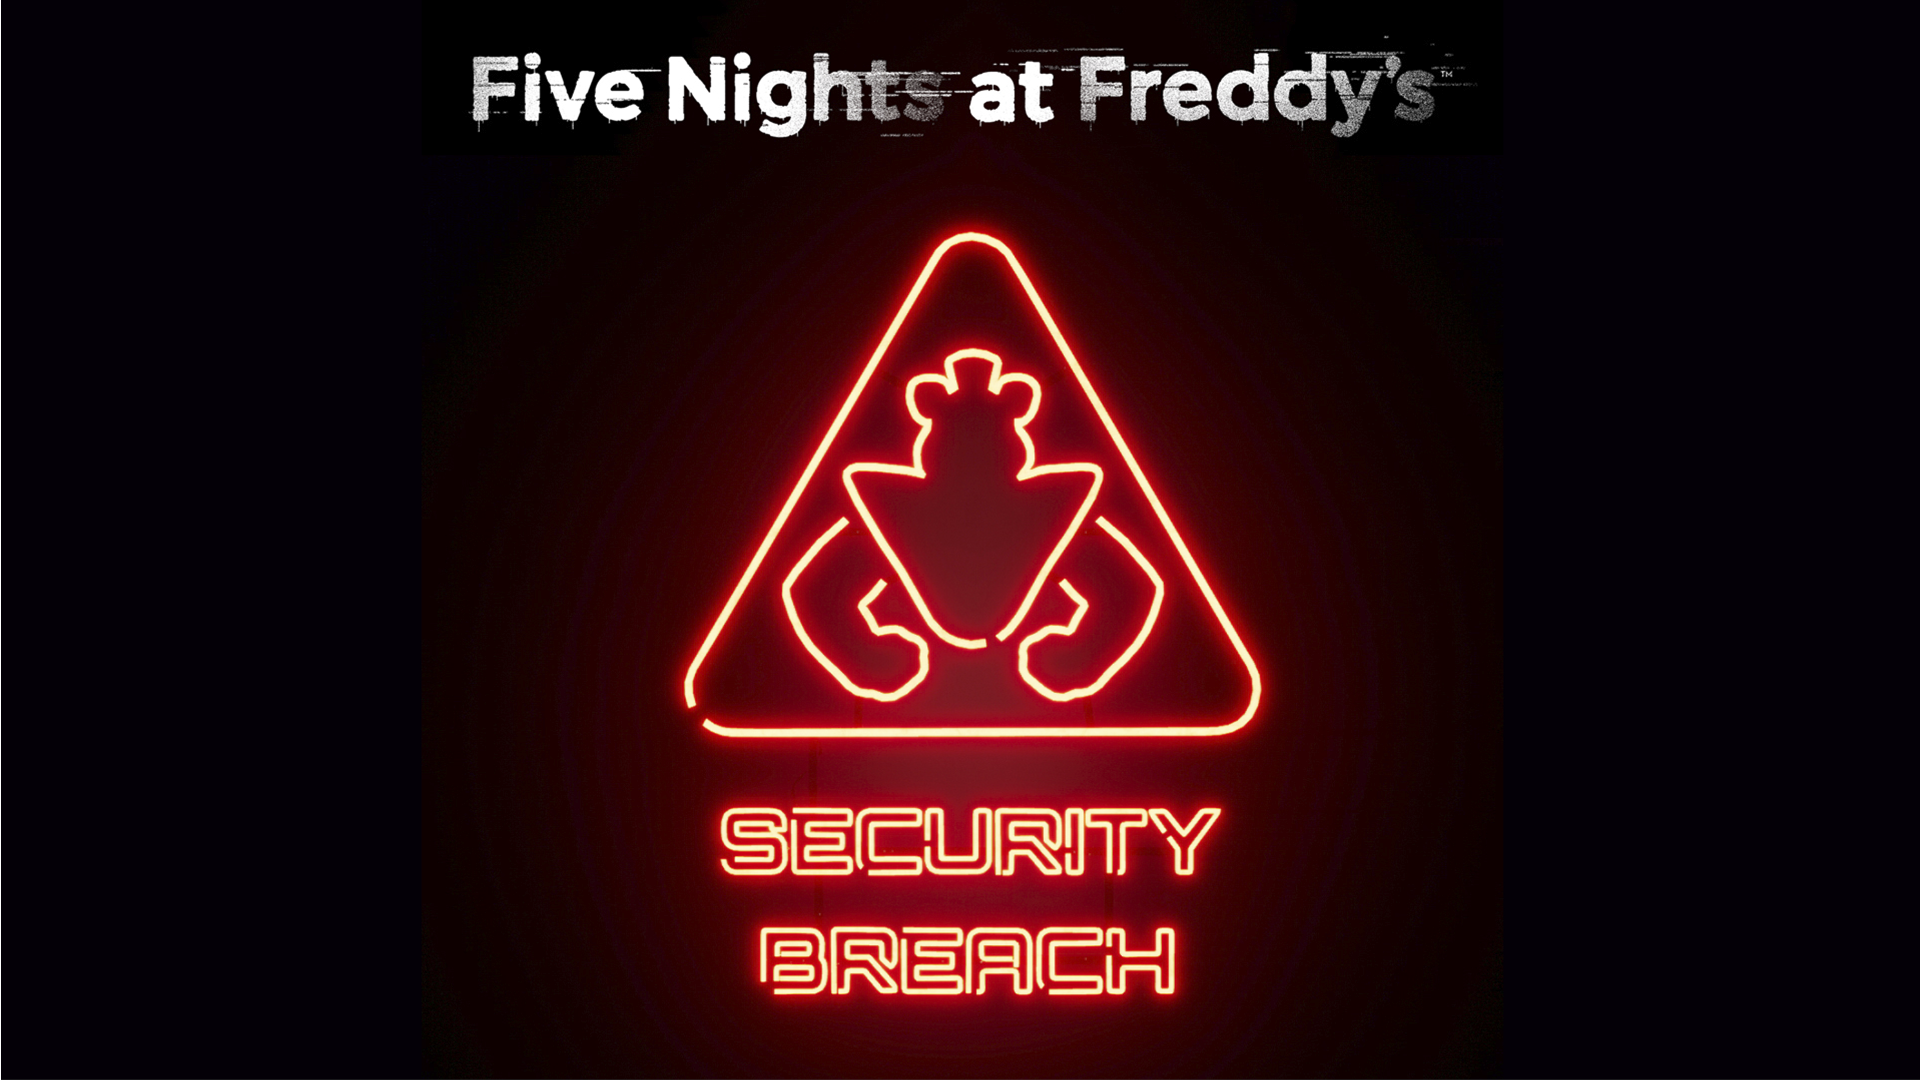 Five Nights at Freddy's: Security Breach - promosyon ögesi